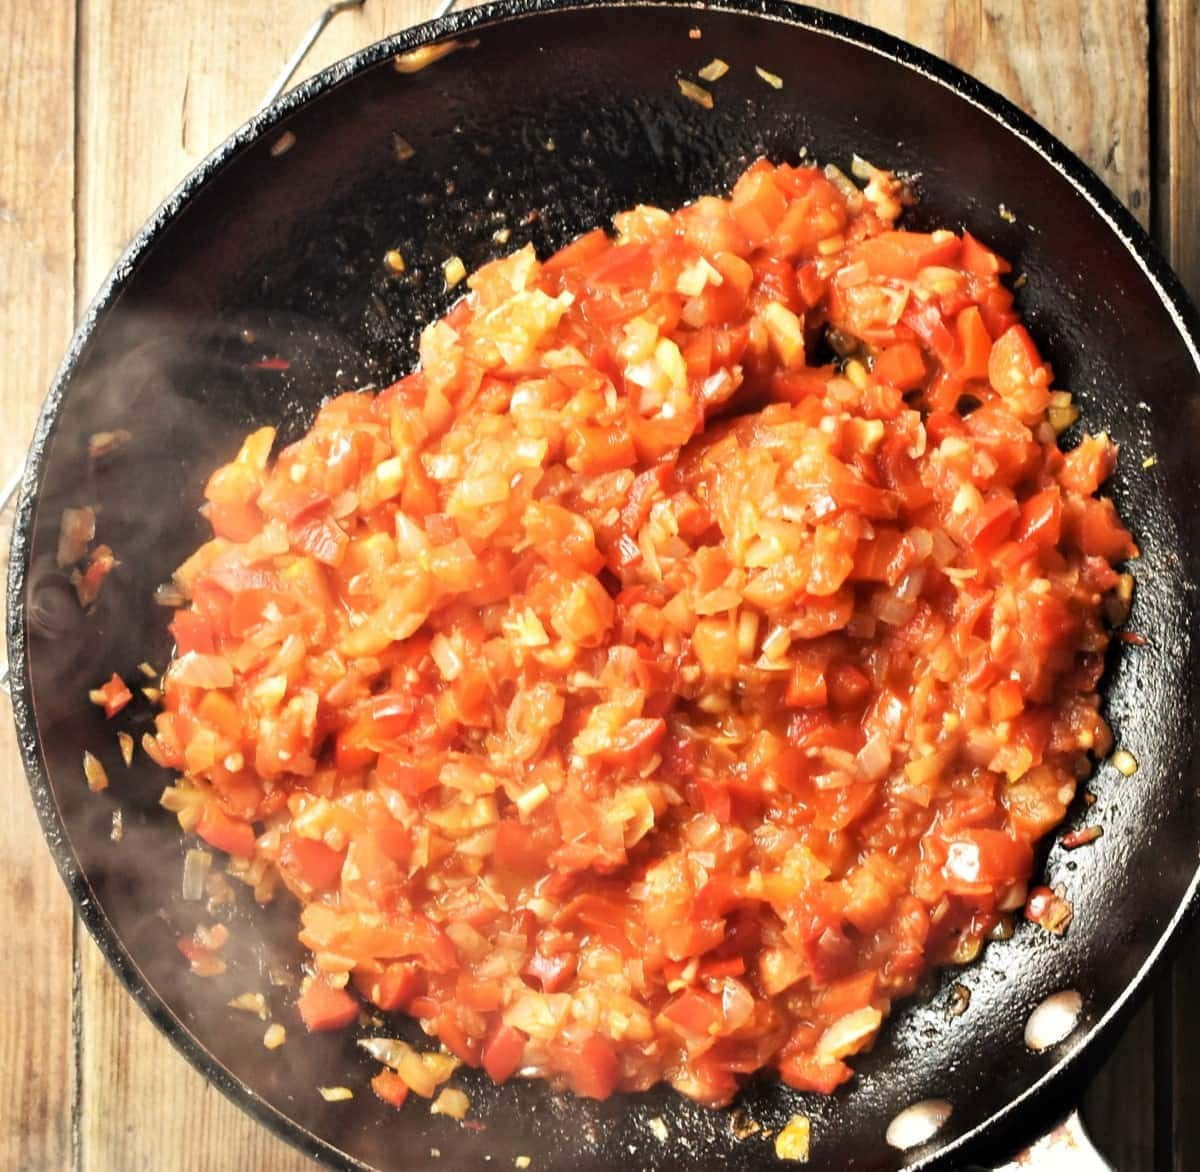 Tomato red pepper sauce in large pan.